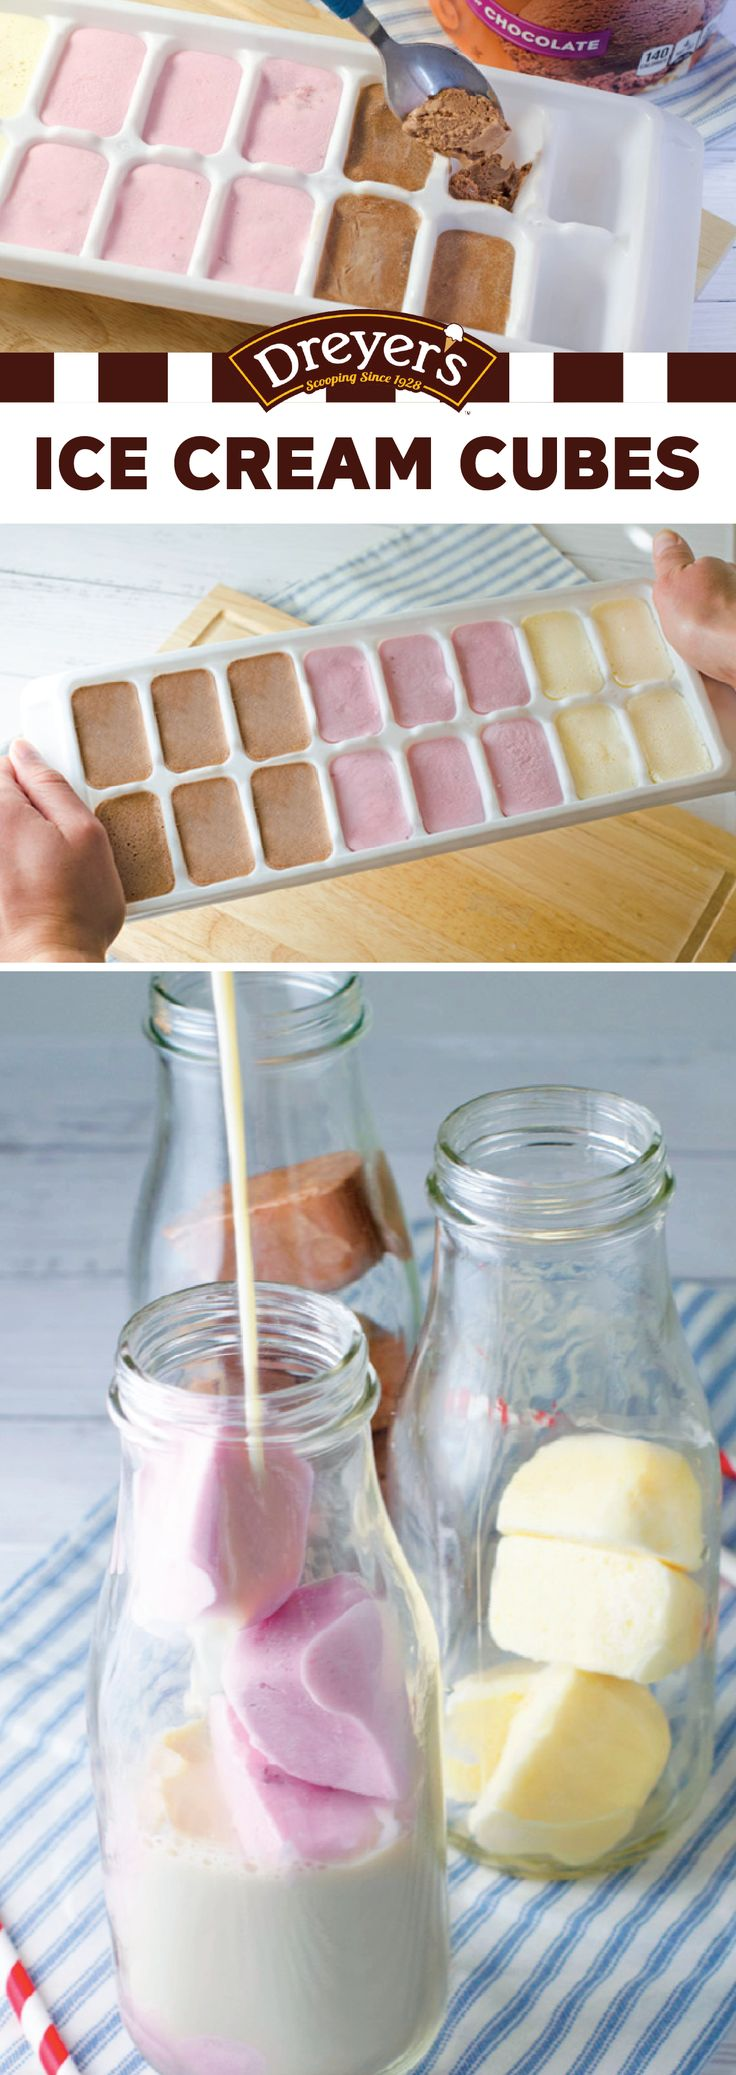 Surprise your kids with a frozen treat that will make their milk a whole lot cooler! Scoop their favorite Dreyer's ice cream flavors into ice cube trays and put back in the freezer to harden. Then, add a cube to a glass of milk for a touch of sweet flavor. This tasty kitchen hack also goes great with coffee or floats!